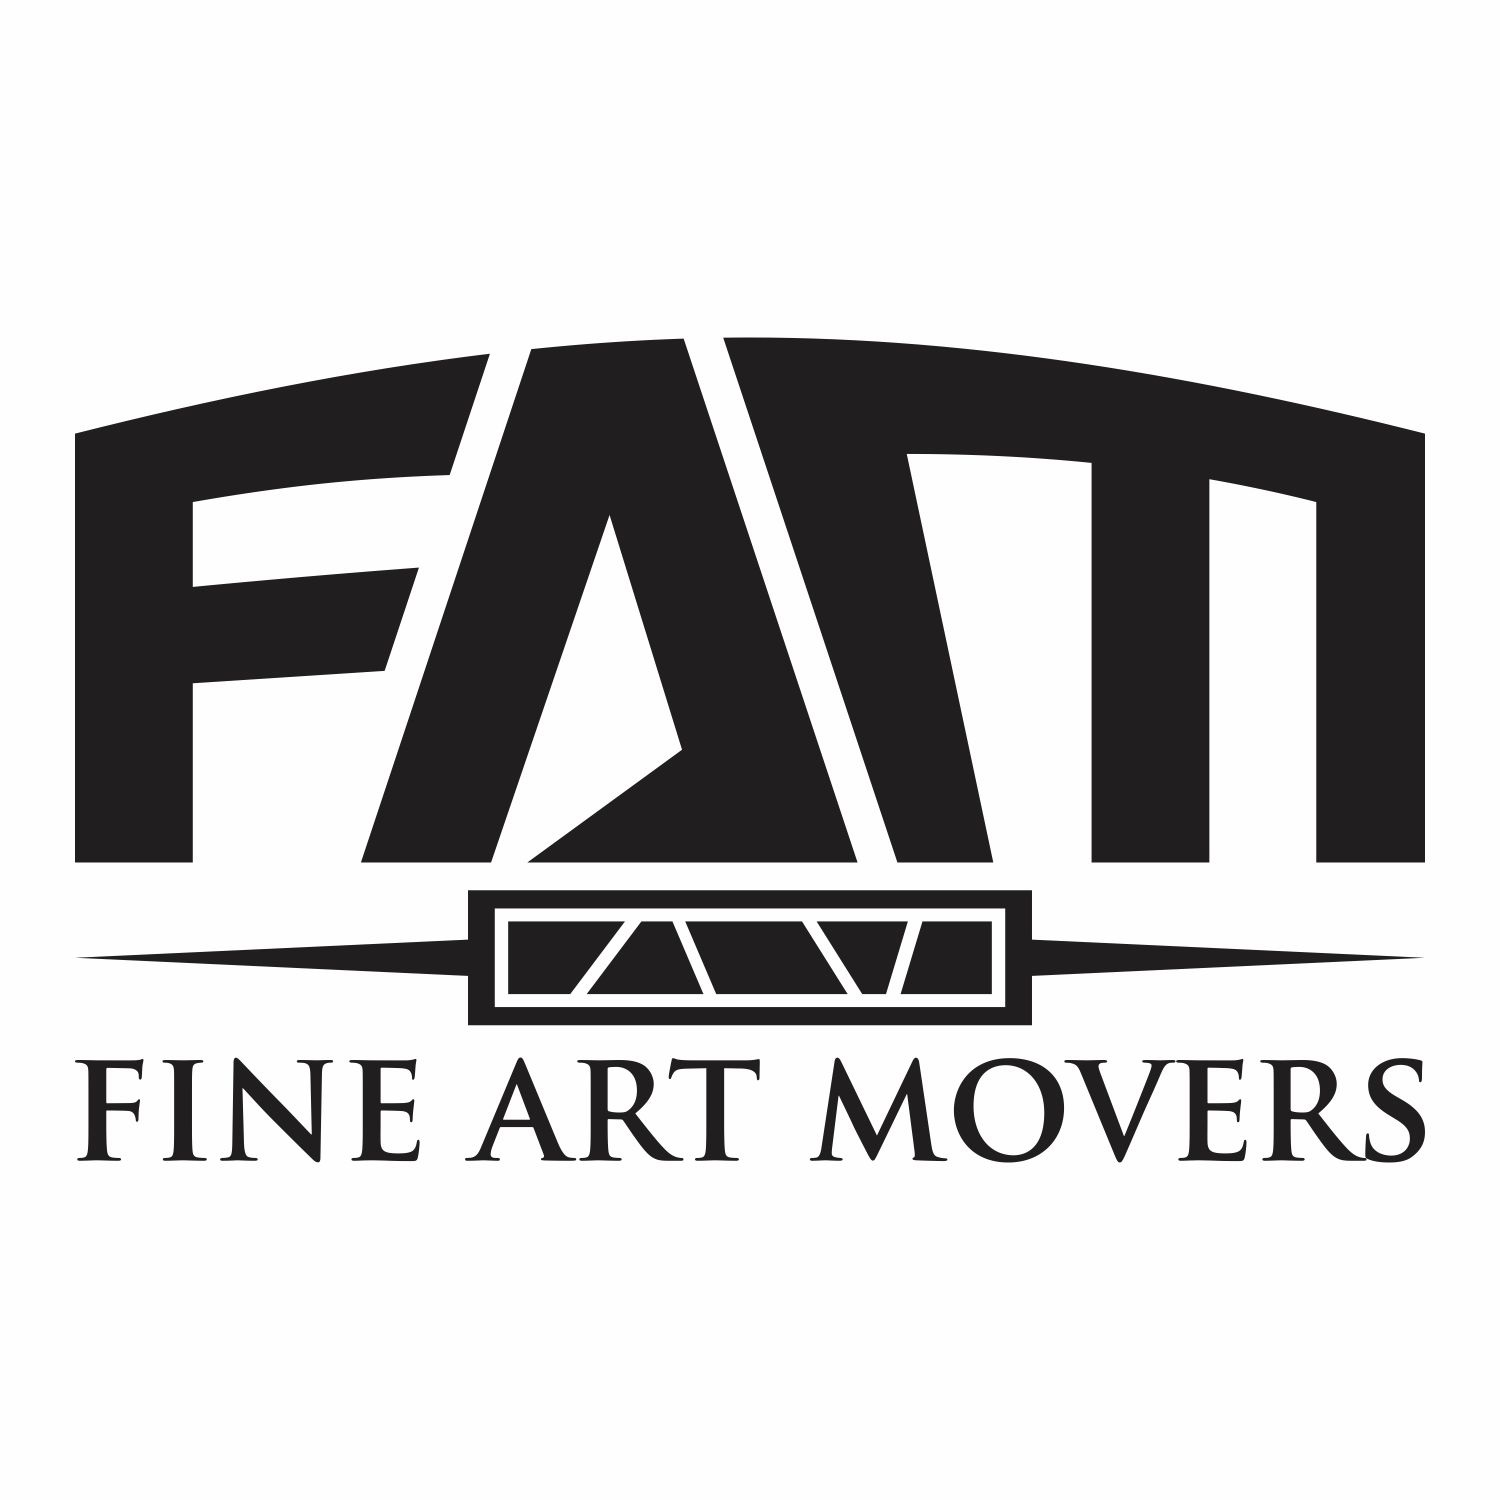 Fine Art Movers image 7